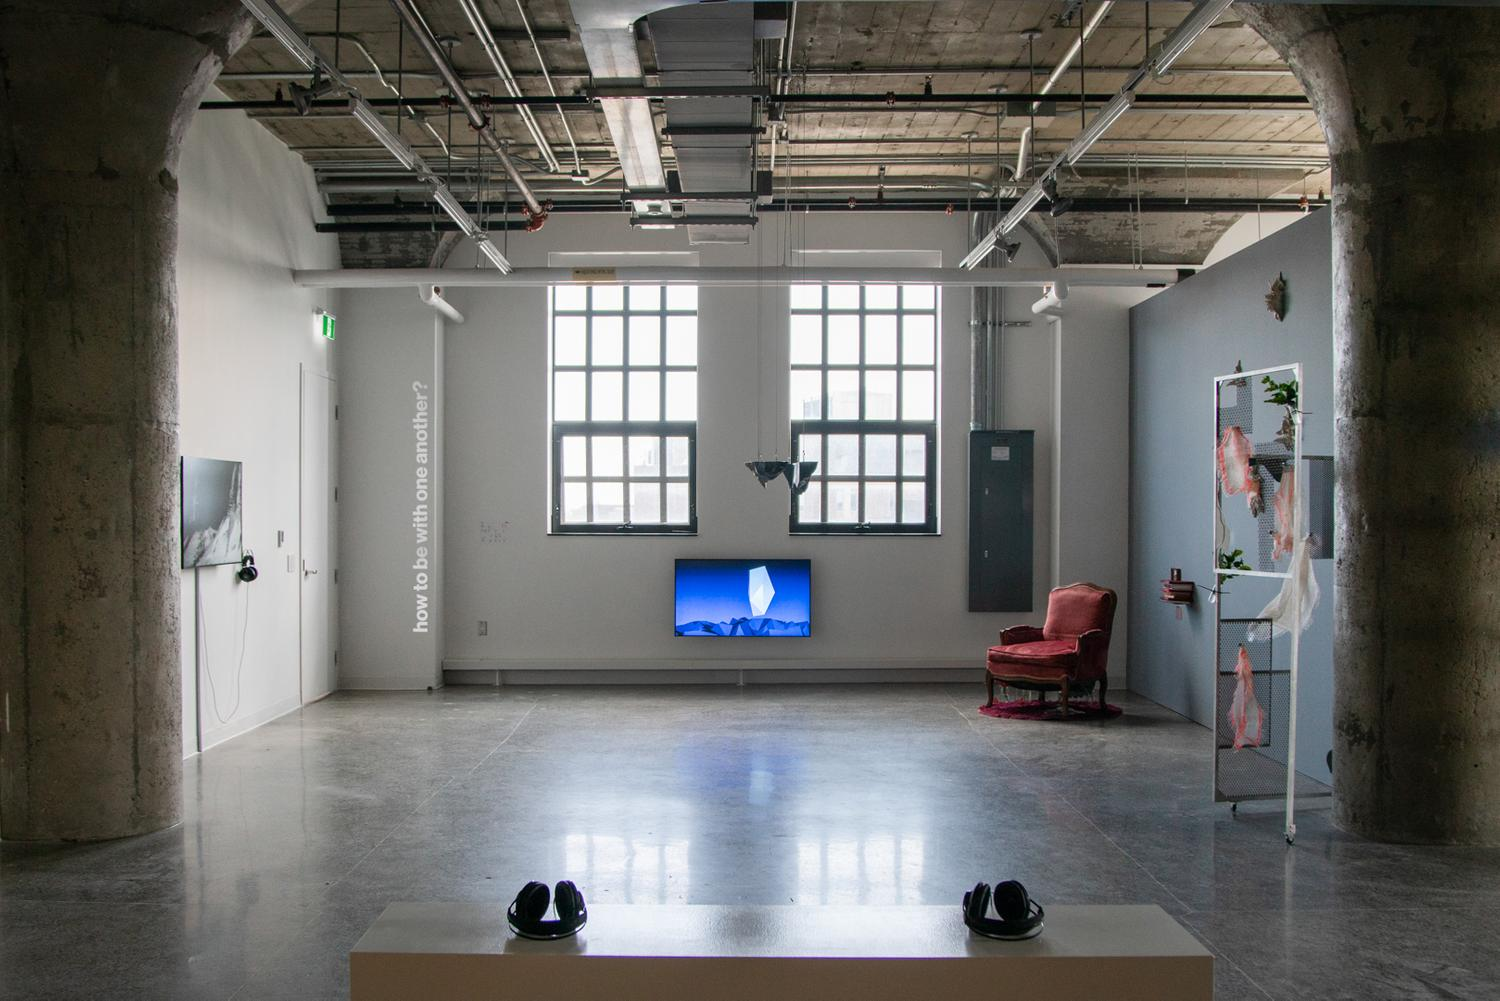 A photo of the south side of the gallery, taken from in the middle of a  gallery. In the foreground, two black headsets rest on a white bench in the centre of the room. An audio piece by Workman. Behind it, various artworks are displayed along the three walls of the gallery. Viewed from left to right in the photo: a TV is hung on eye-level, screening a black-and-white video work by Kolcze. On the white wall, a silvery vinyl text reads, quote, how to be with one another?, end quote. A TV monitor hangs low on the wall of the gallery centred between and below two big windows, screening an animated video by Nuff of a crystal-like landscape. A small black sculpture by Polymetis hangs from the ceiling, in the middle of the room. The wall on the right is dark grey. Against it, a red velvet chair and a stack of zines by Woudenberg. Grey sculptures scattered on the wall by Salazar. A sculptural installation featuring an aluminum door frame, bandages, and plants by Dreifelds.